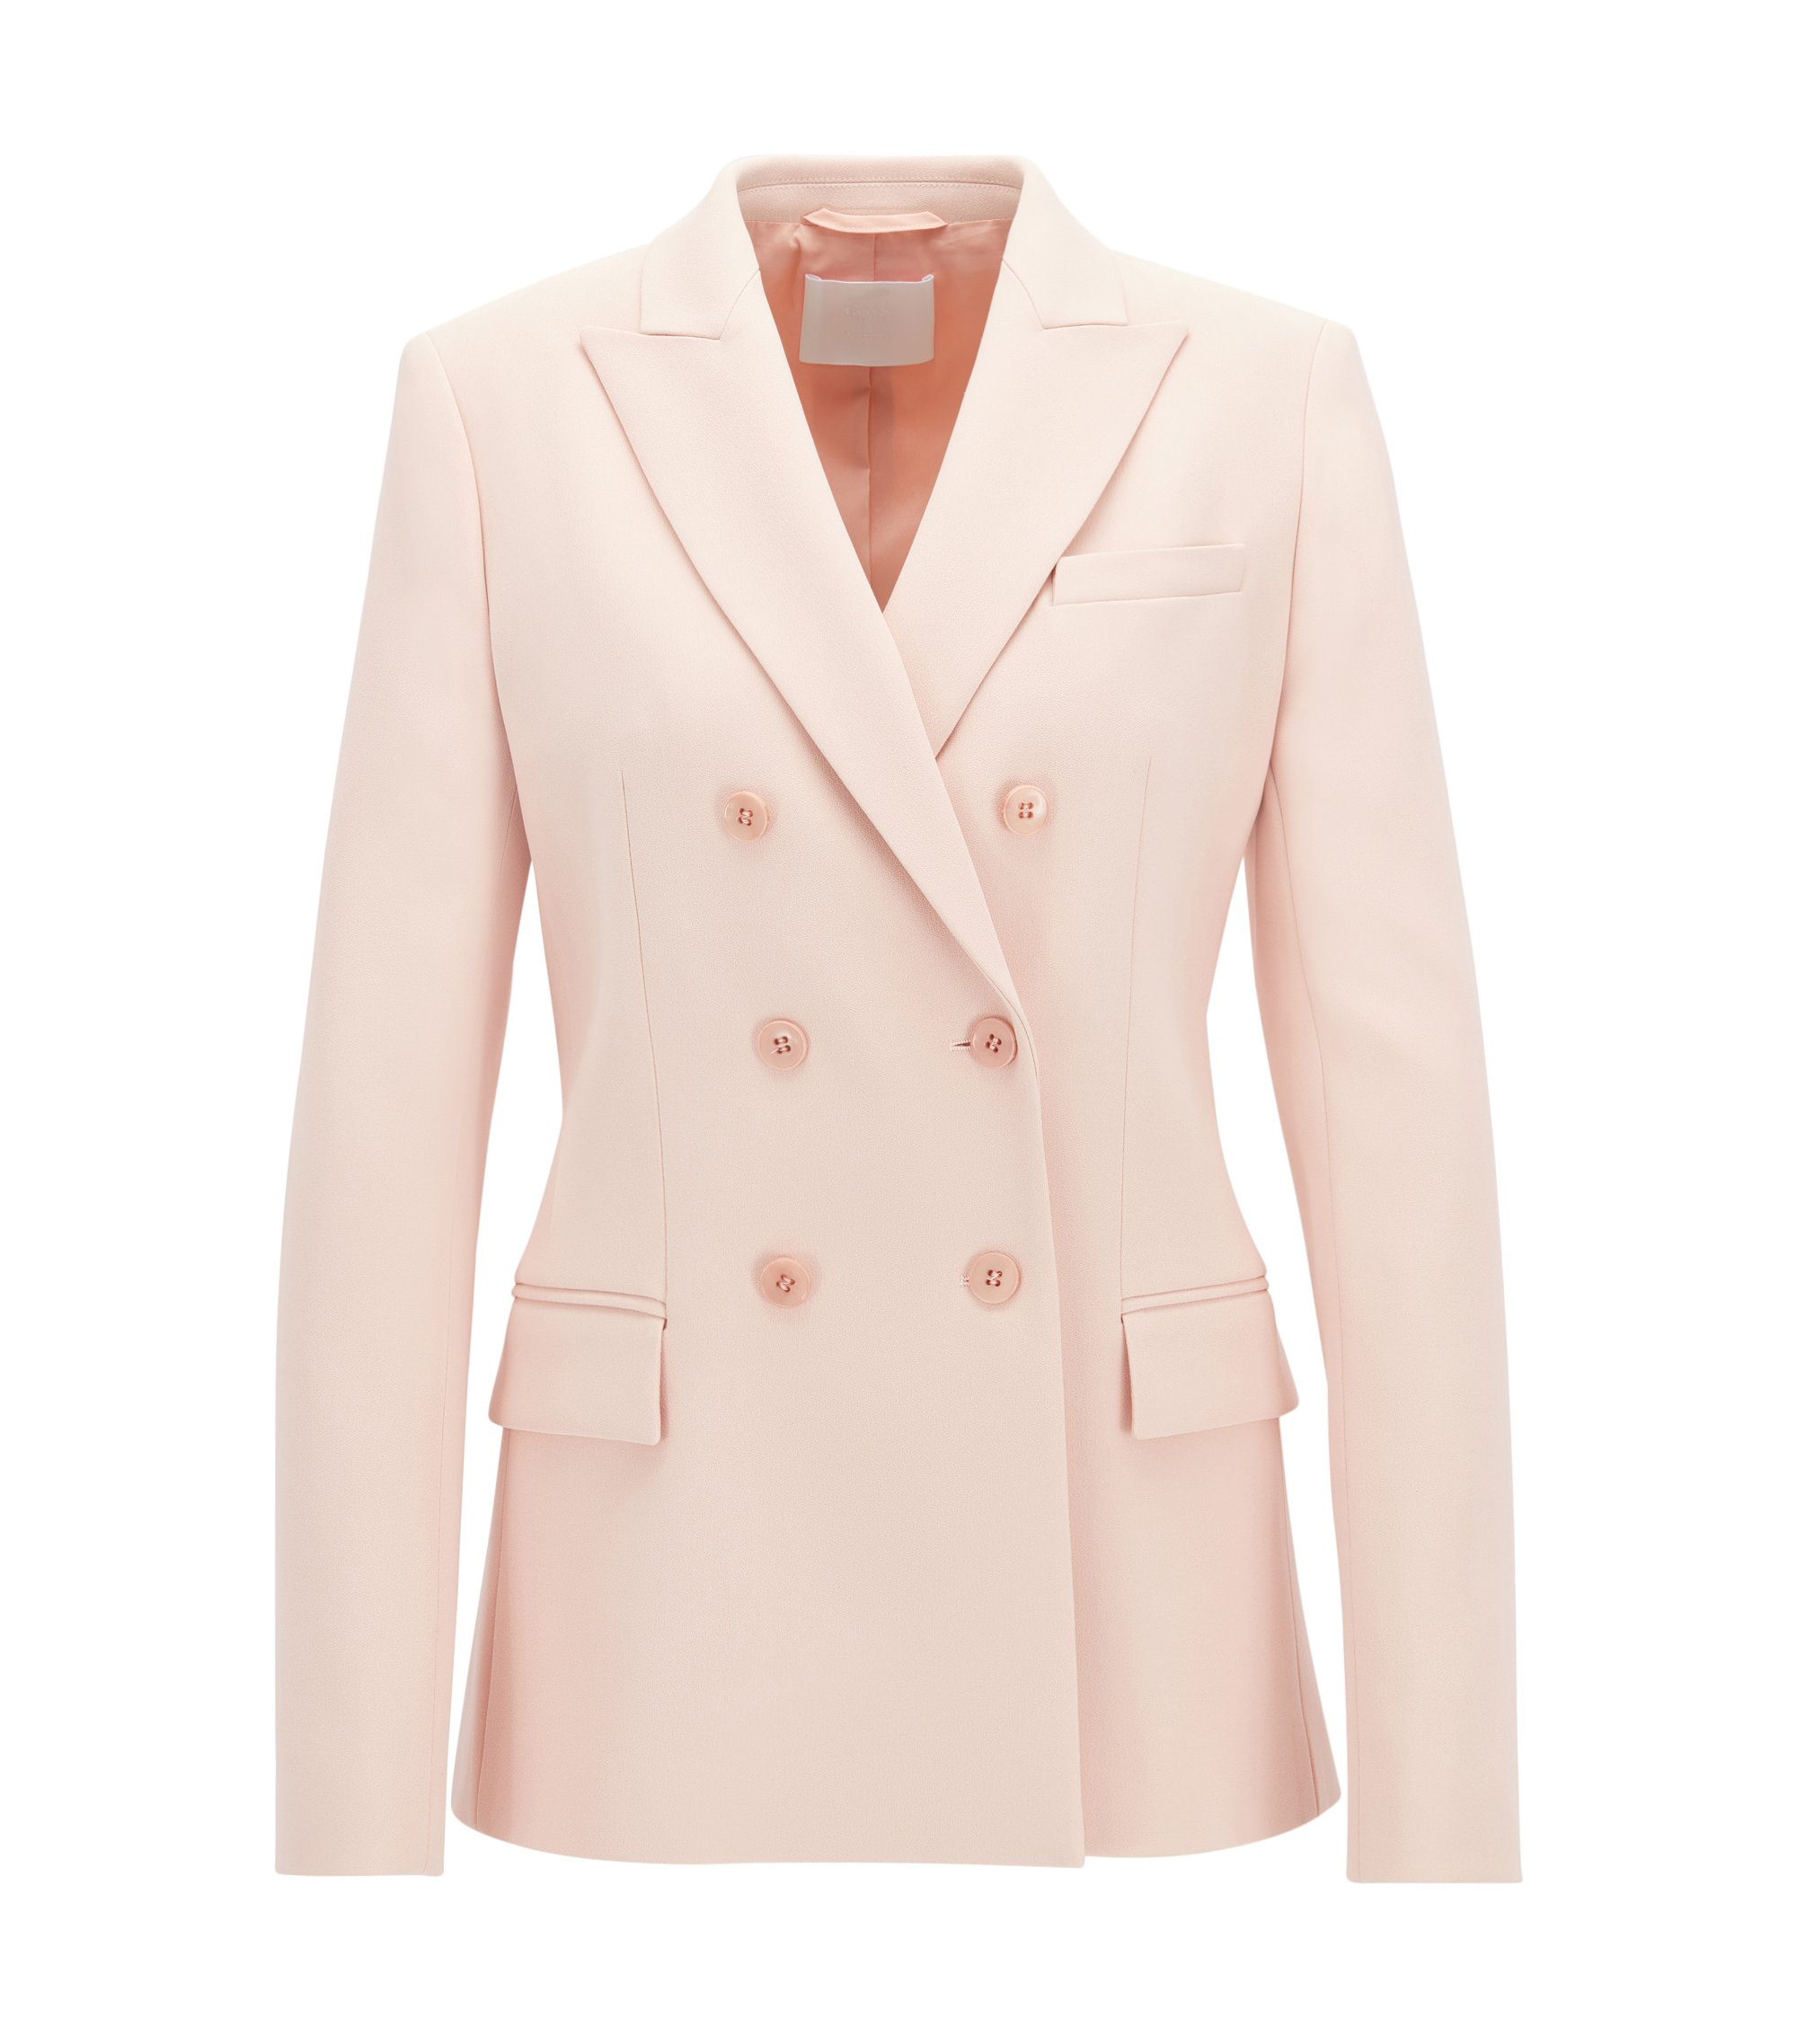 Gallery Collection relaxed-fit double-breasted blazer , light pink